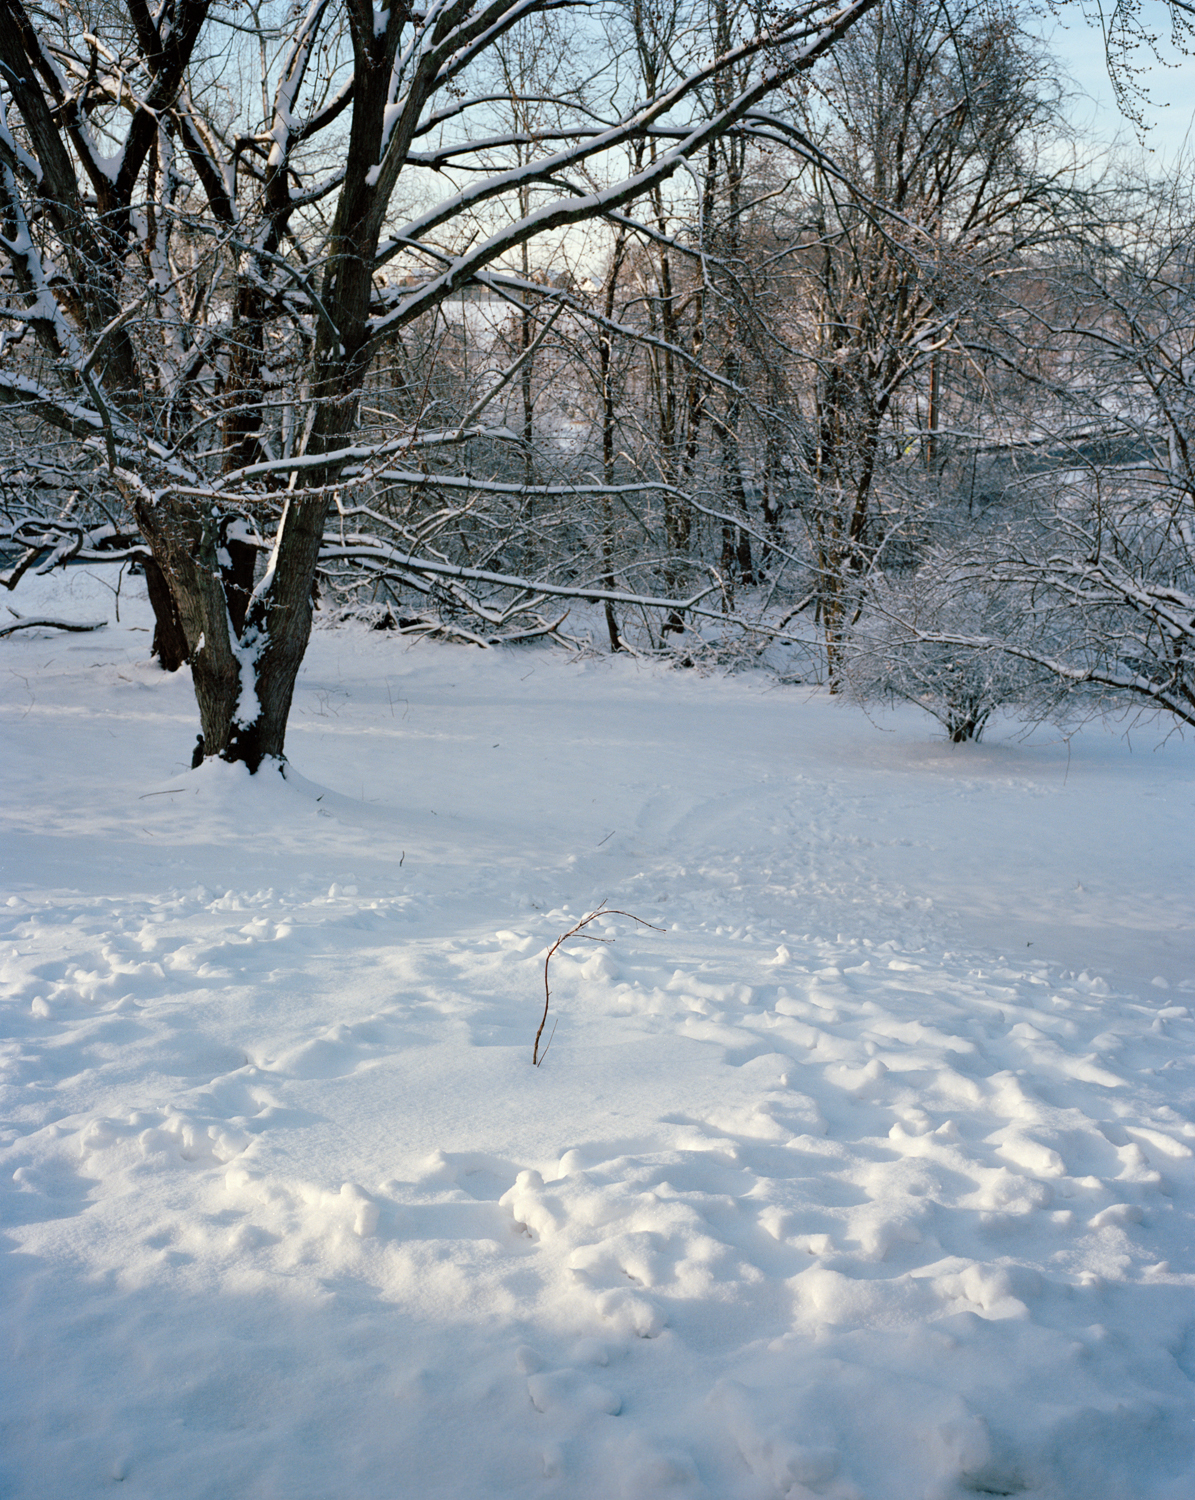 36-Little Tree in Snow.jpg